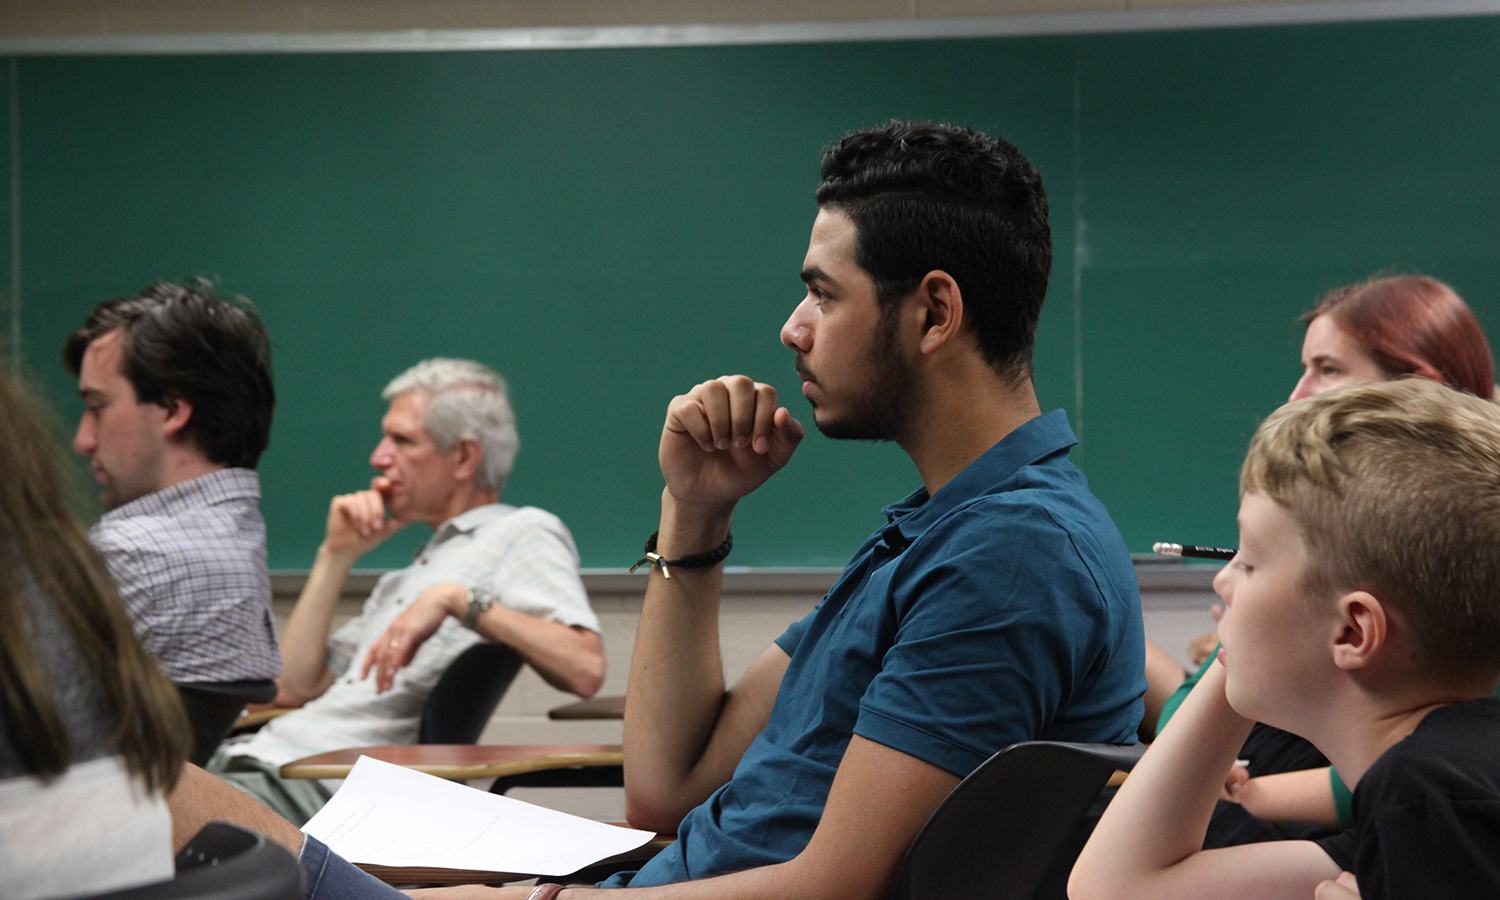 Hamdan Ahmed '20 sits in on a lecture as part of the Research Experience for Undergraduates Program hosted by the HWS Department of Mathematics.